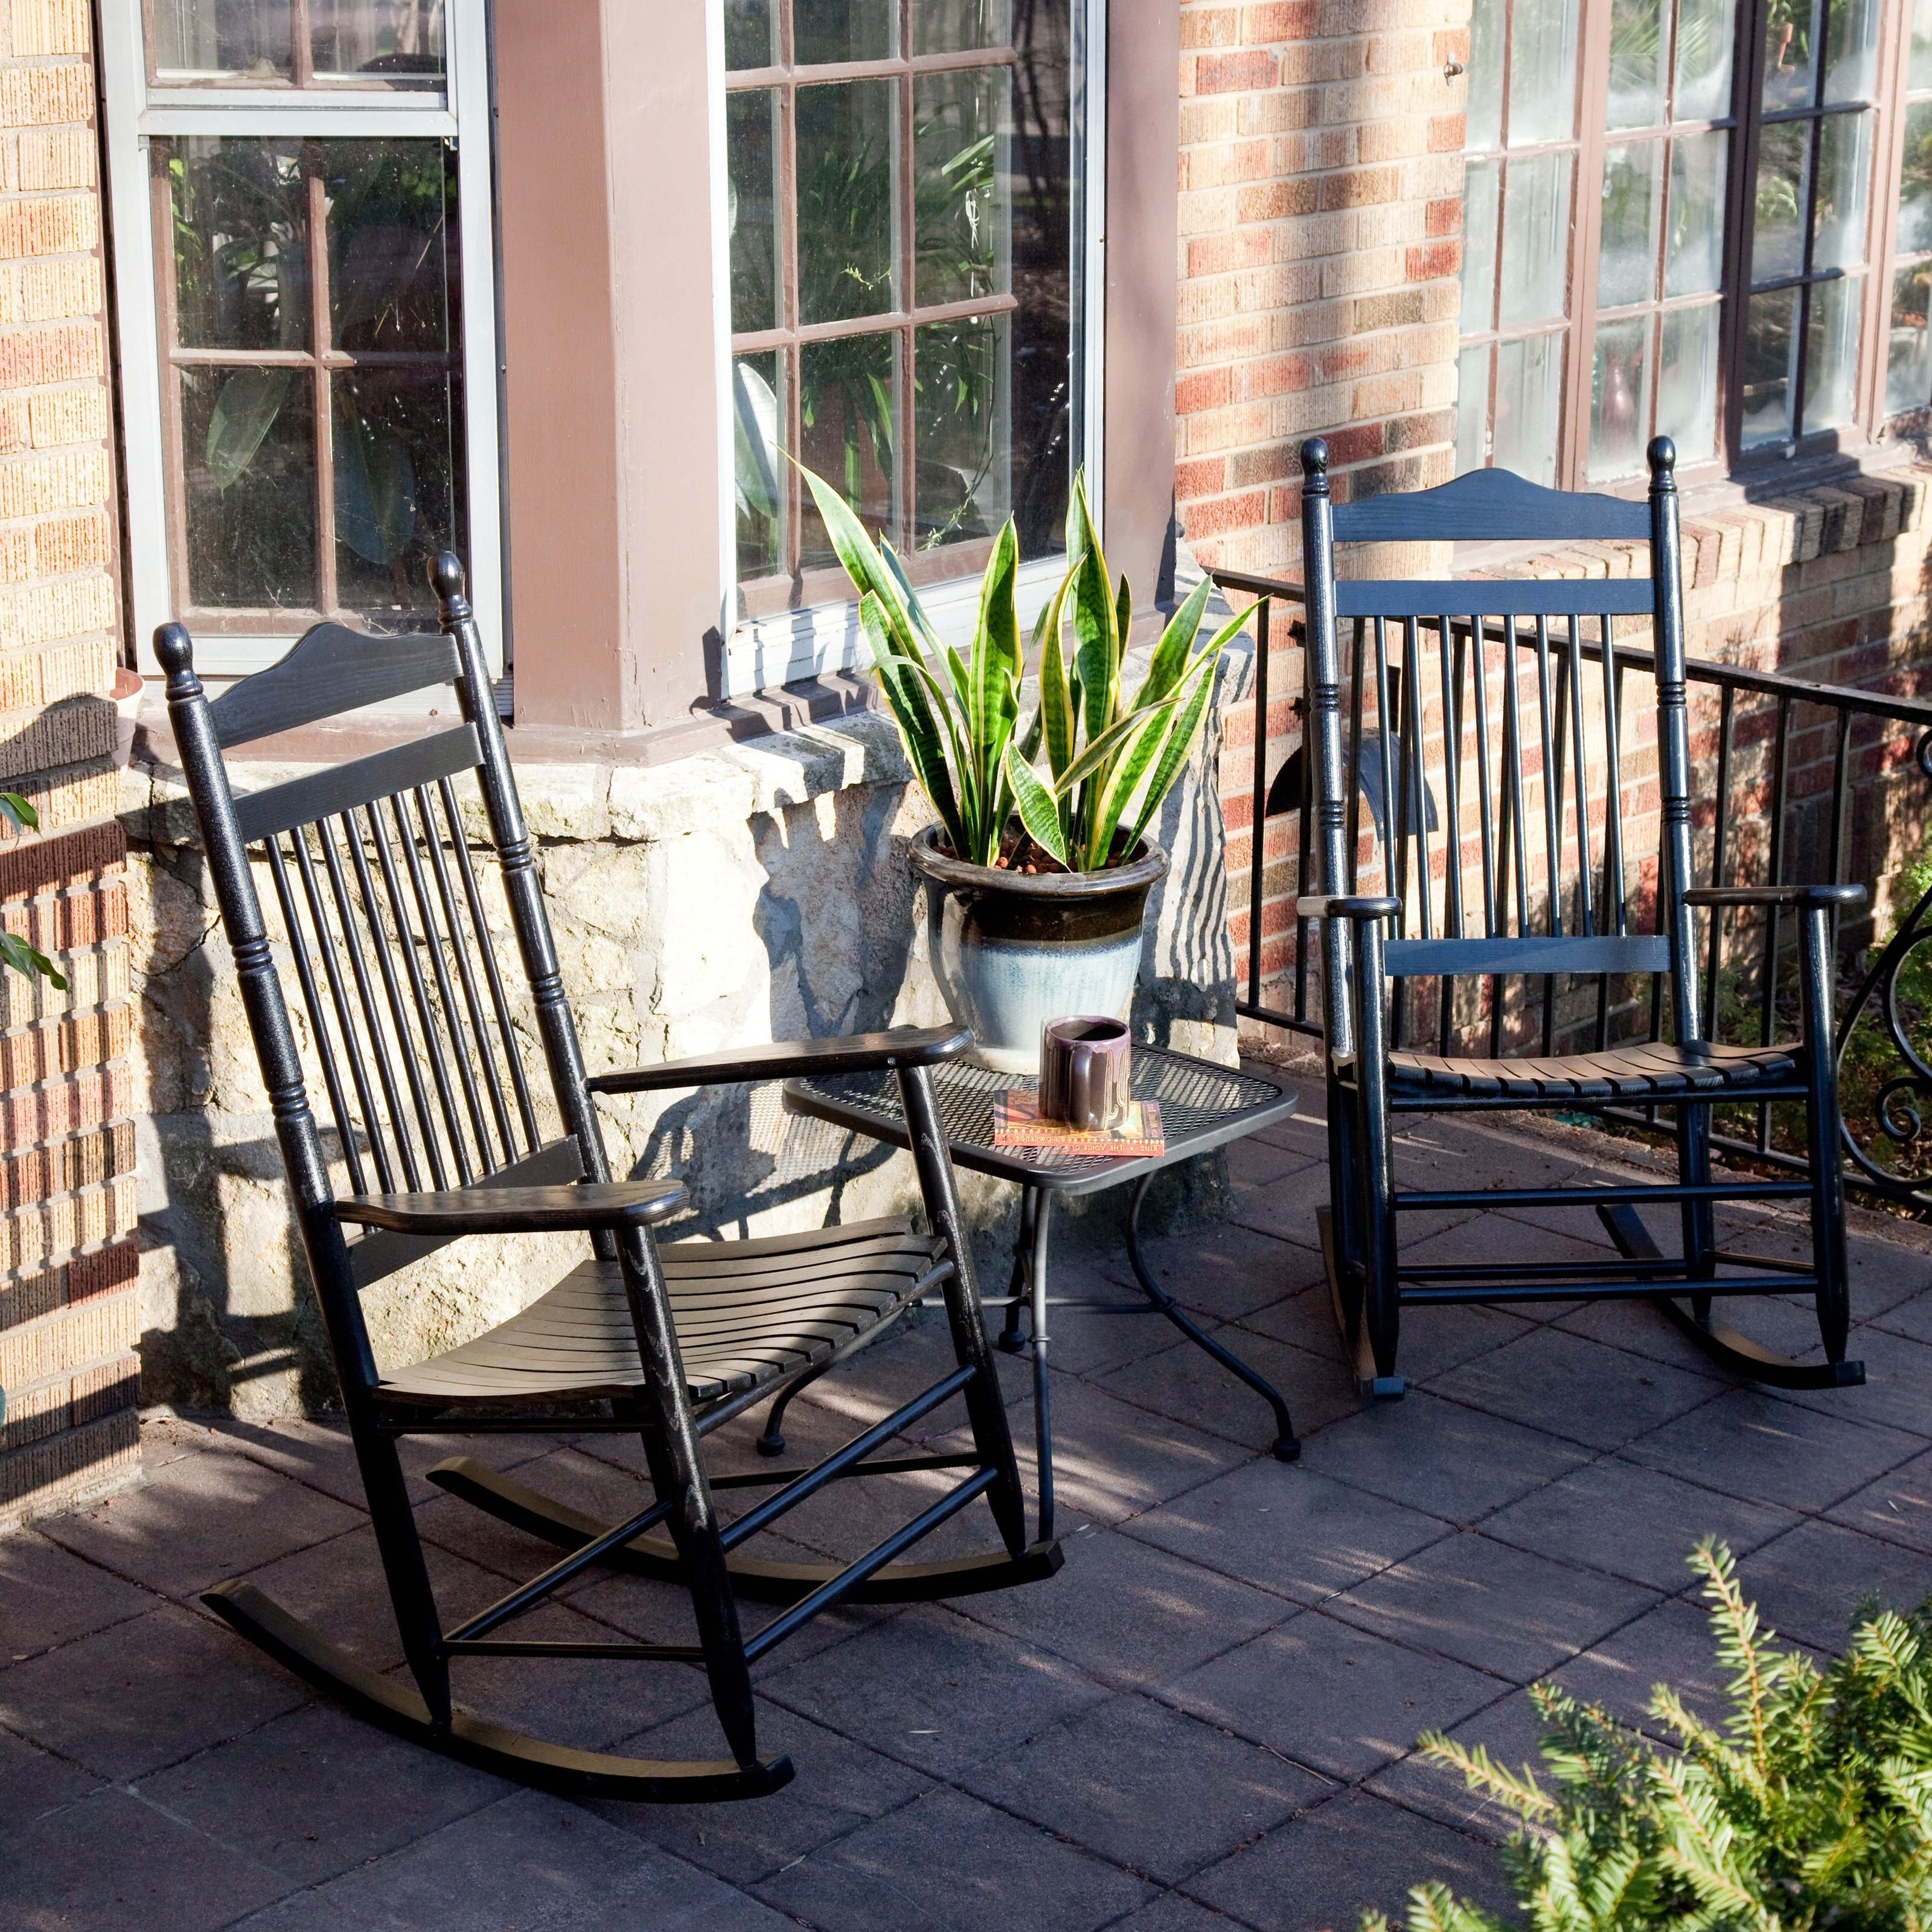 Dixie Seating Wrightsville Indoor Outdoor Slat Rocking Chairs Wicker Within 2018 Patio Rocking Chairs And Table (View 4 of 15)